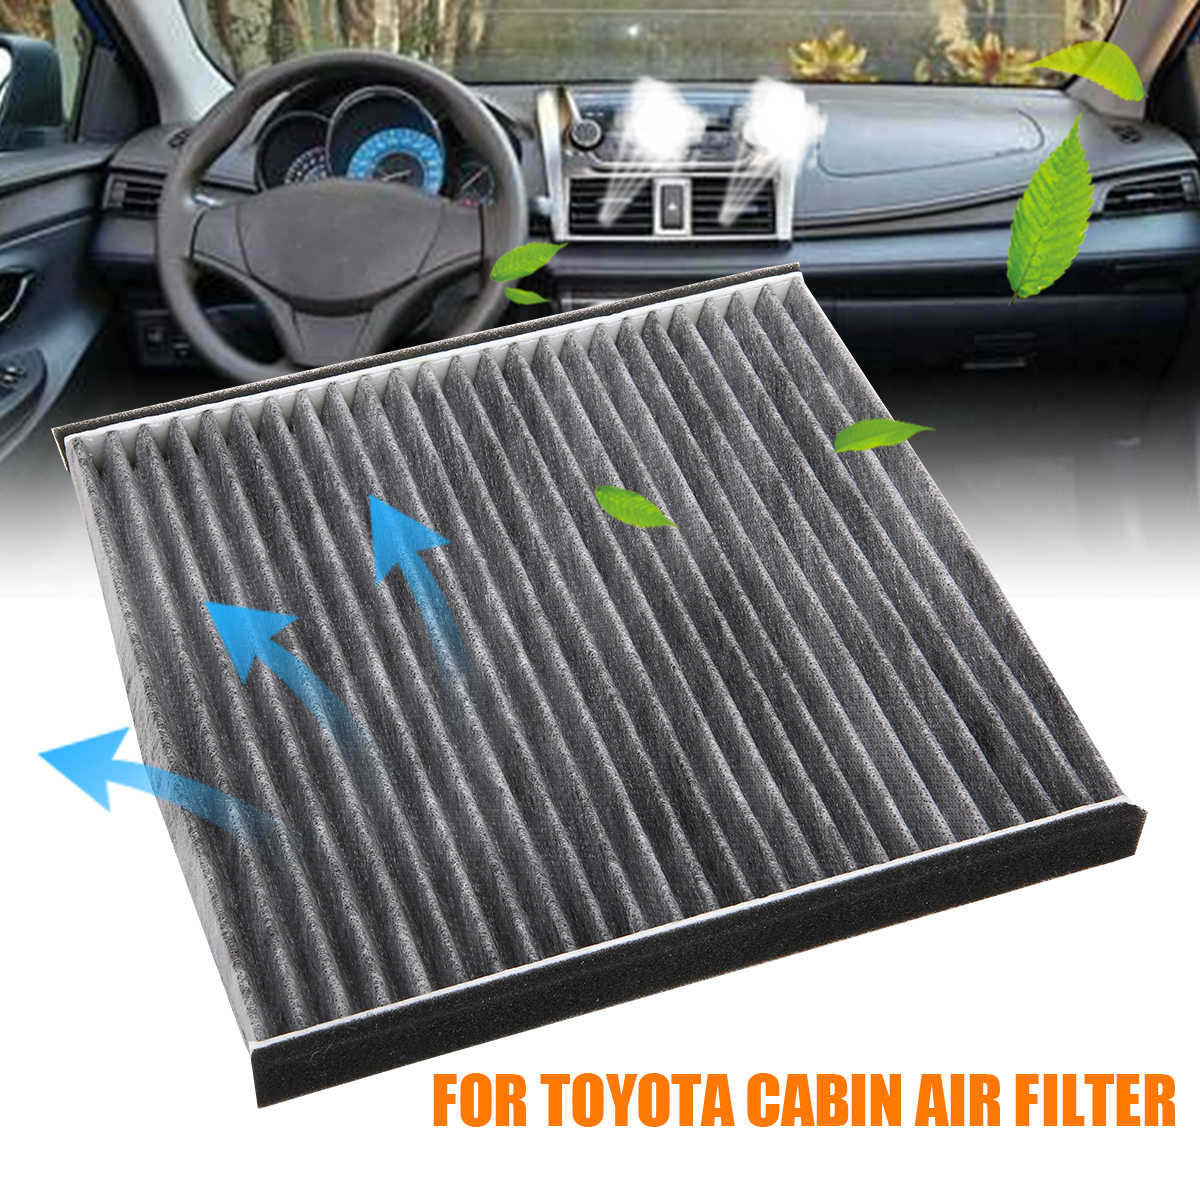 Mayitr 1pc High Quality Cabin Air Filter Non-woven Repalacement For Toyota 4 Runner Avalon Camry Corolla Cruiser 87139-33010